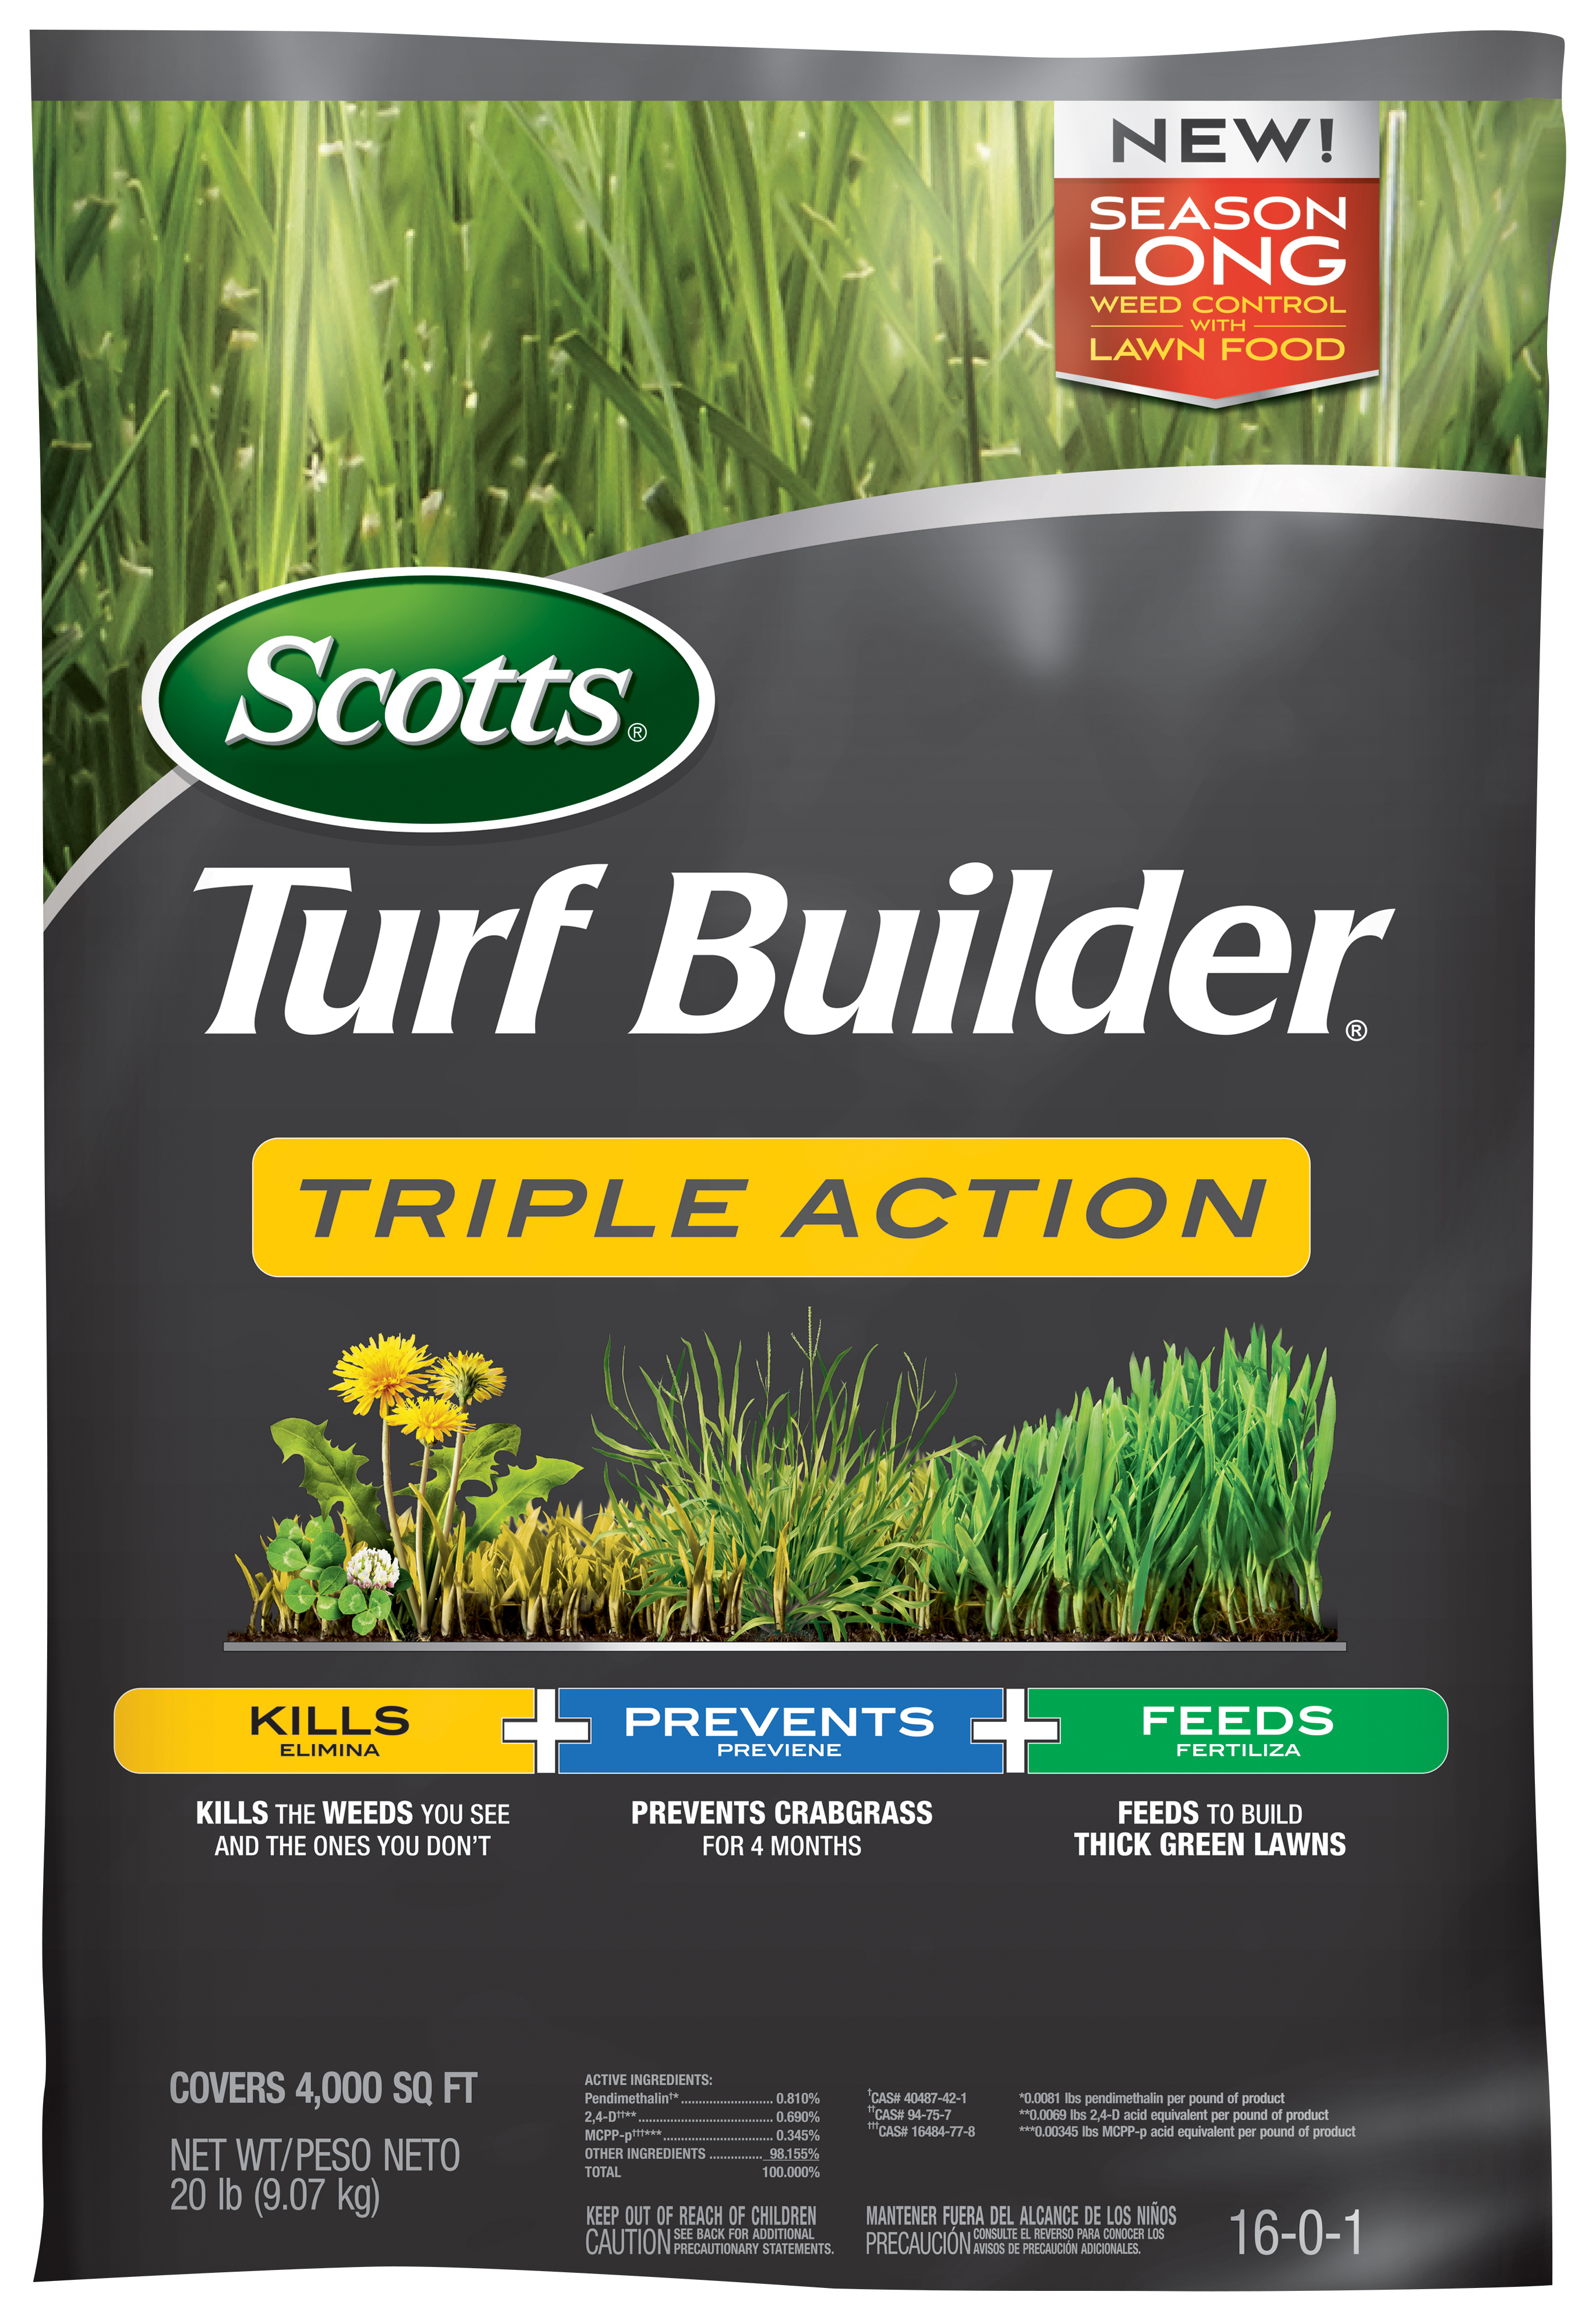 How To Control Oxalis Lawn Weeds Control Scotts